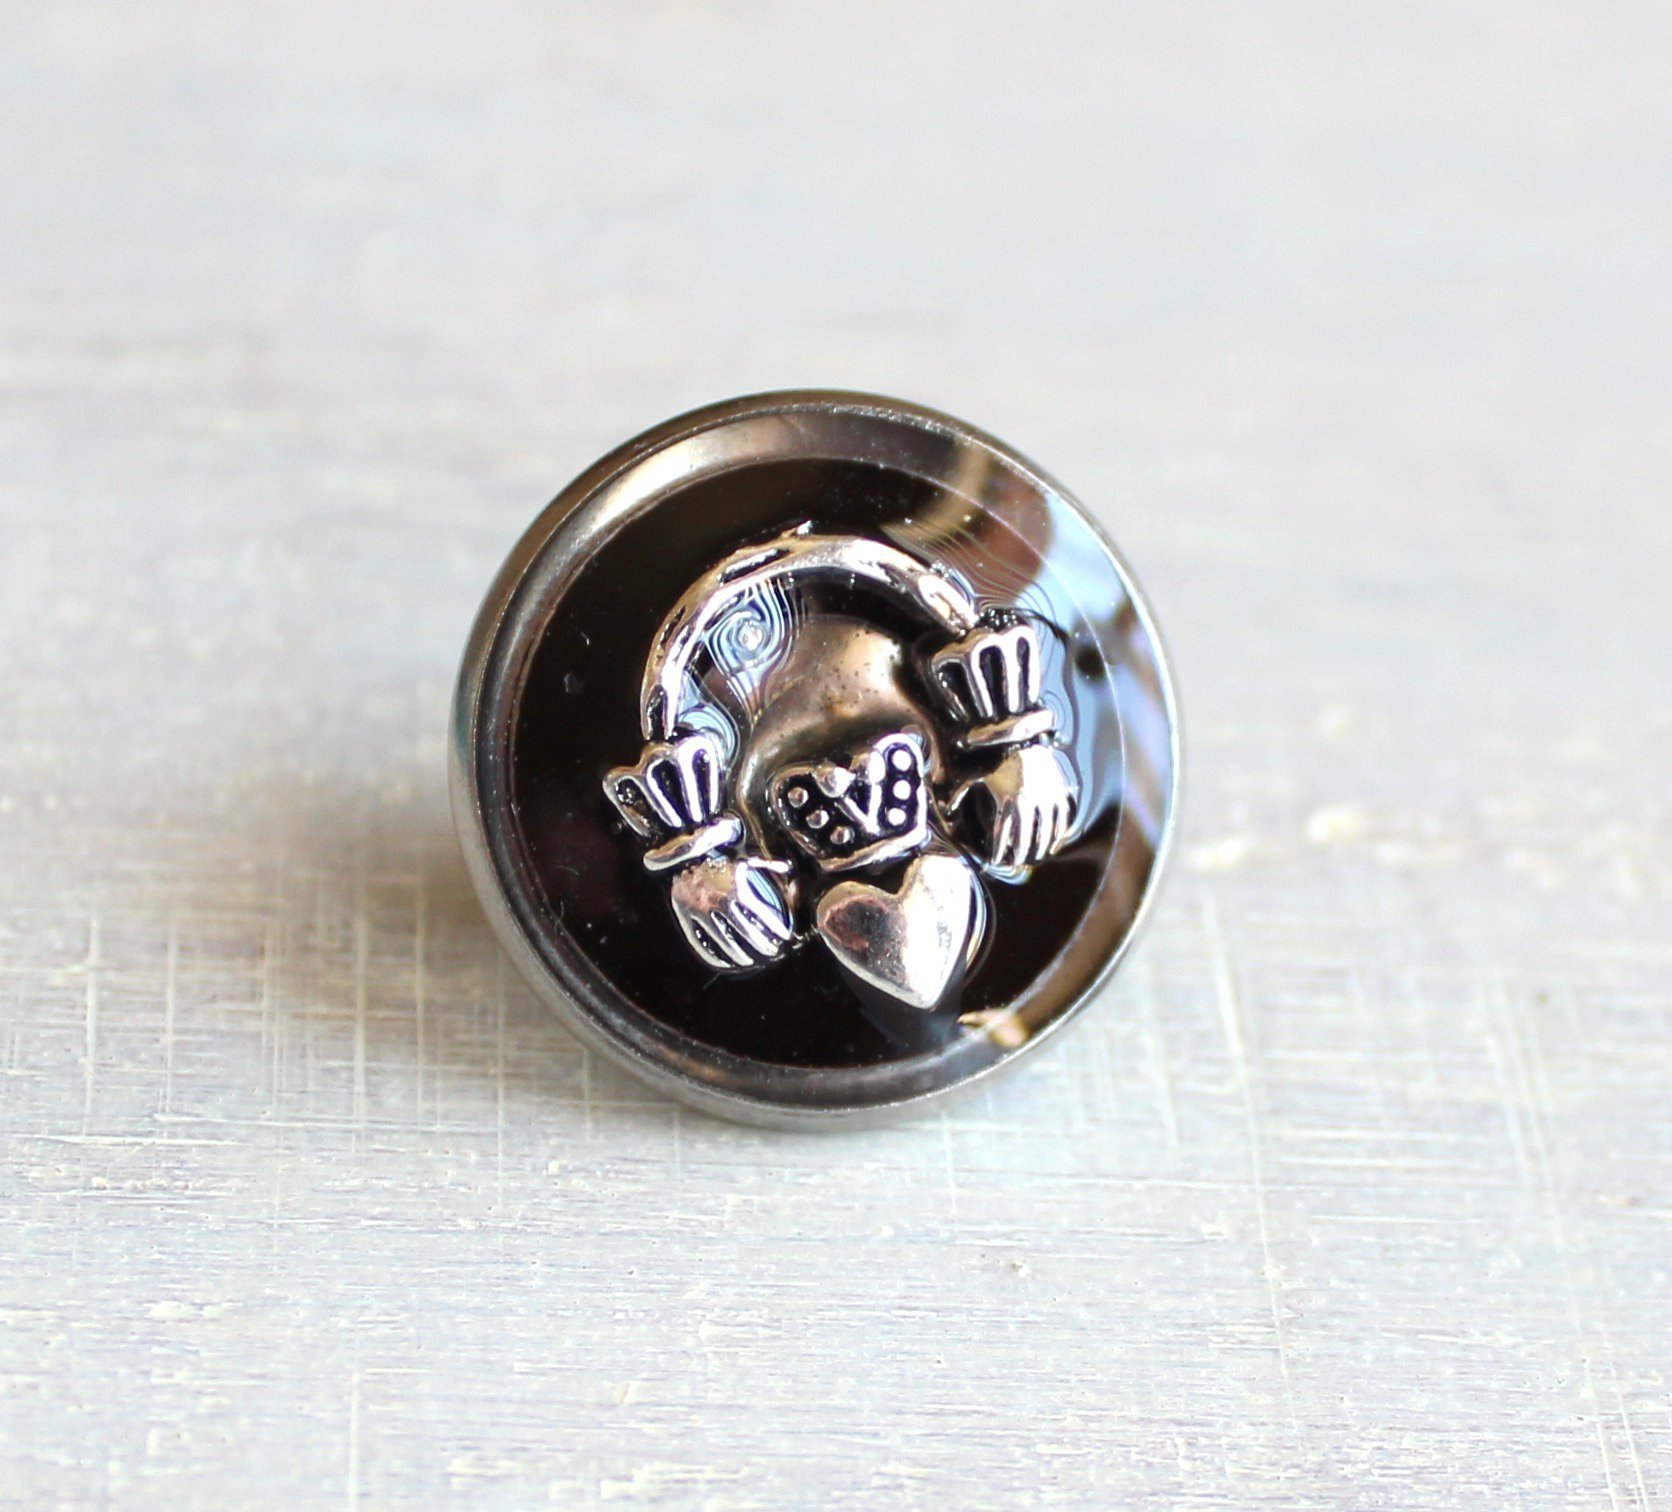 Black Claddagh tie tack / lapel pin.